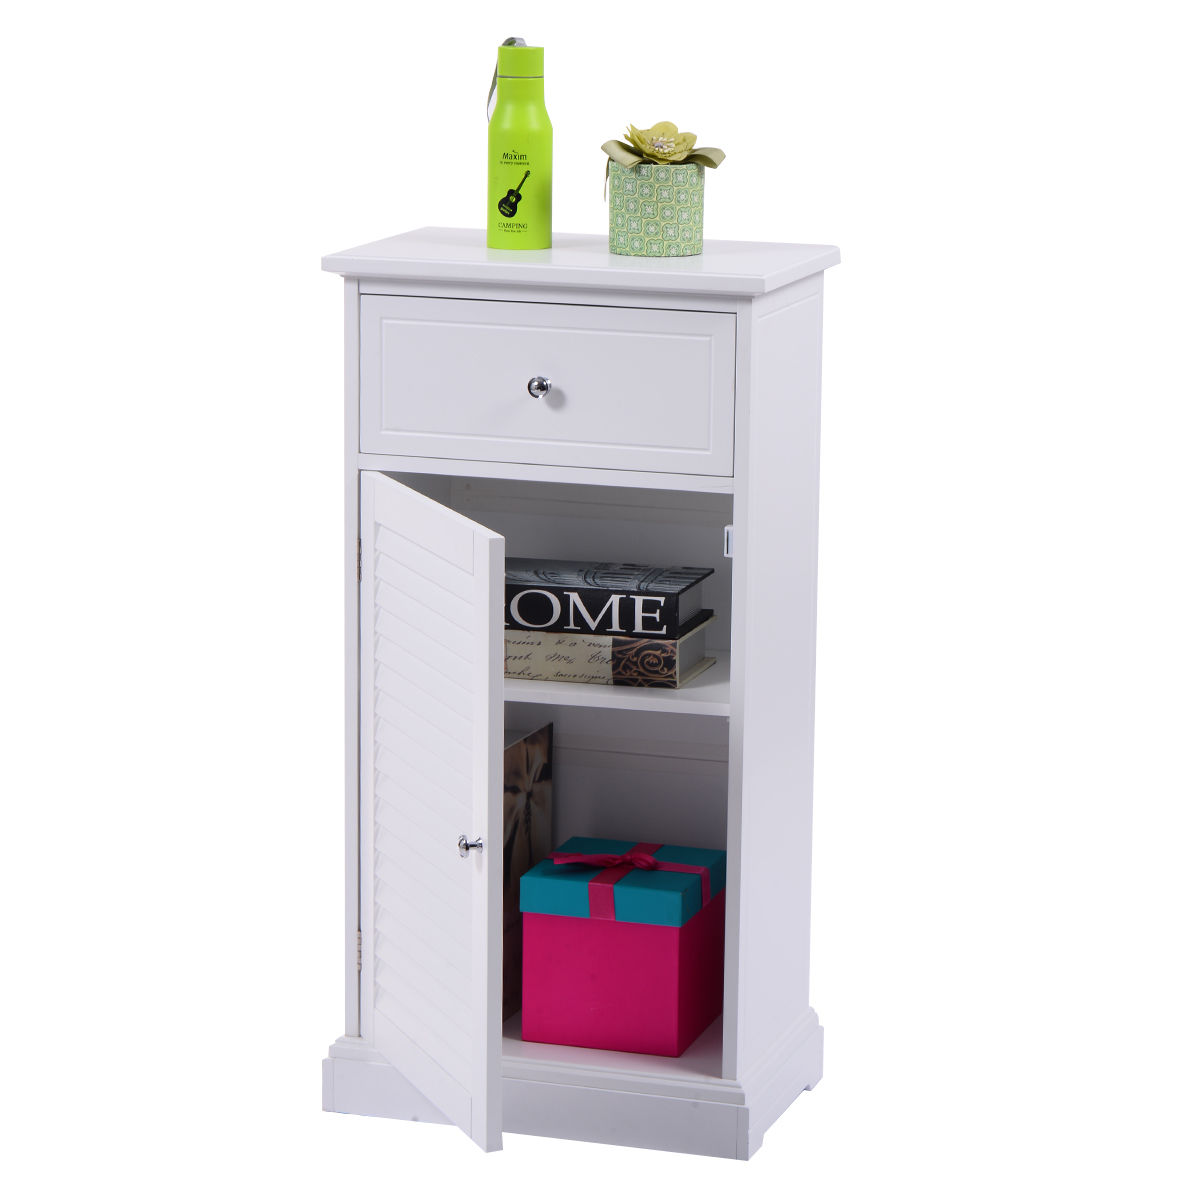 Giantex White Storage Floor Cabinet Modern Wall Shutter Door Bathroom Organizer Wood Cupboard Shelf Home Furniture HW53812 купить в Москве 2019